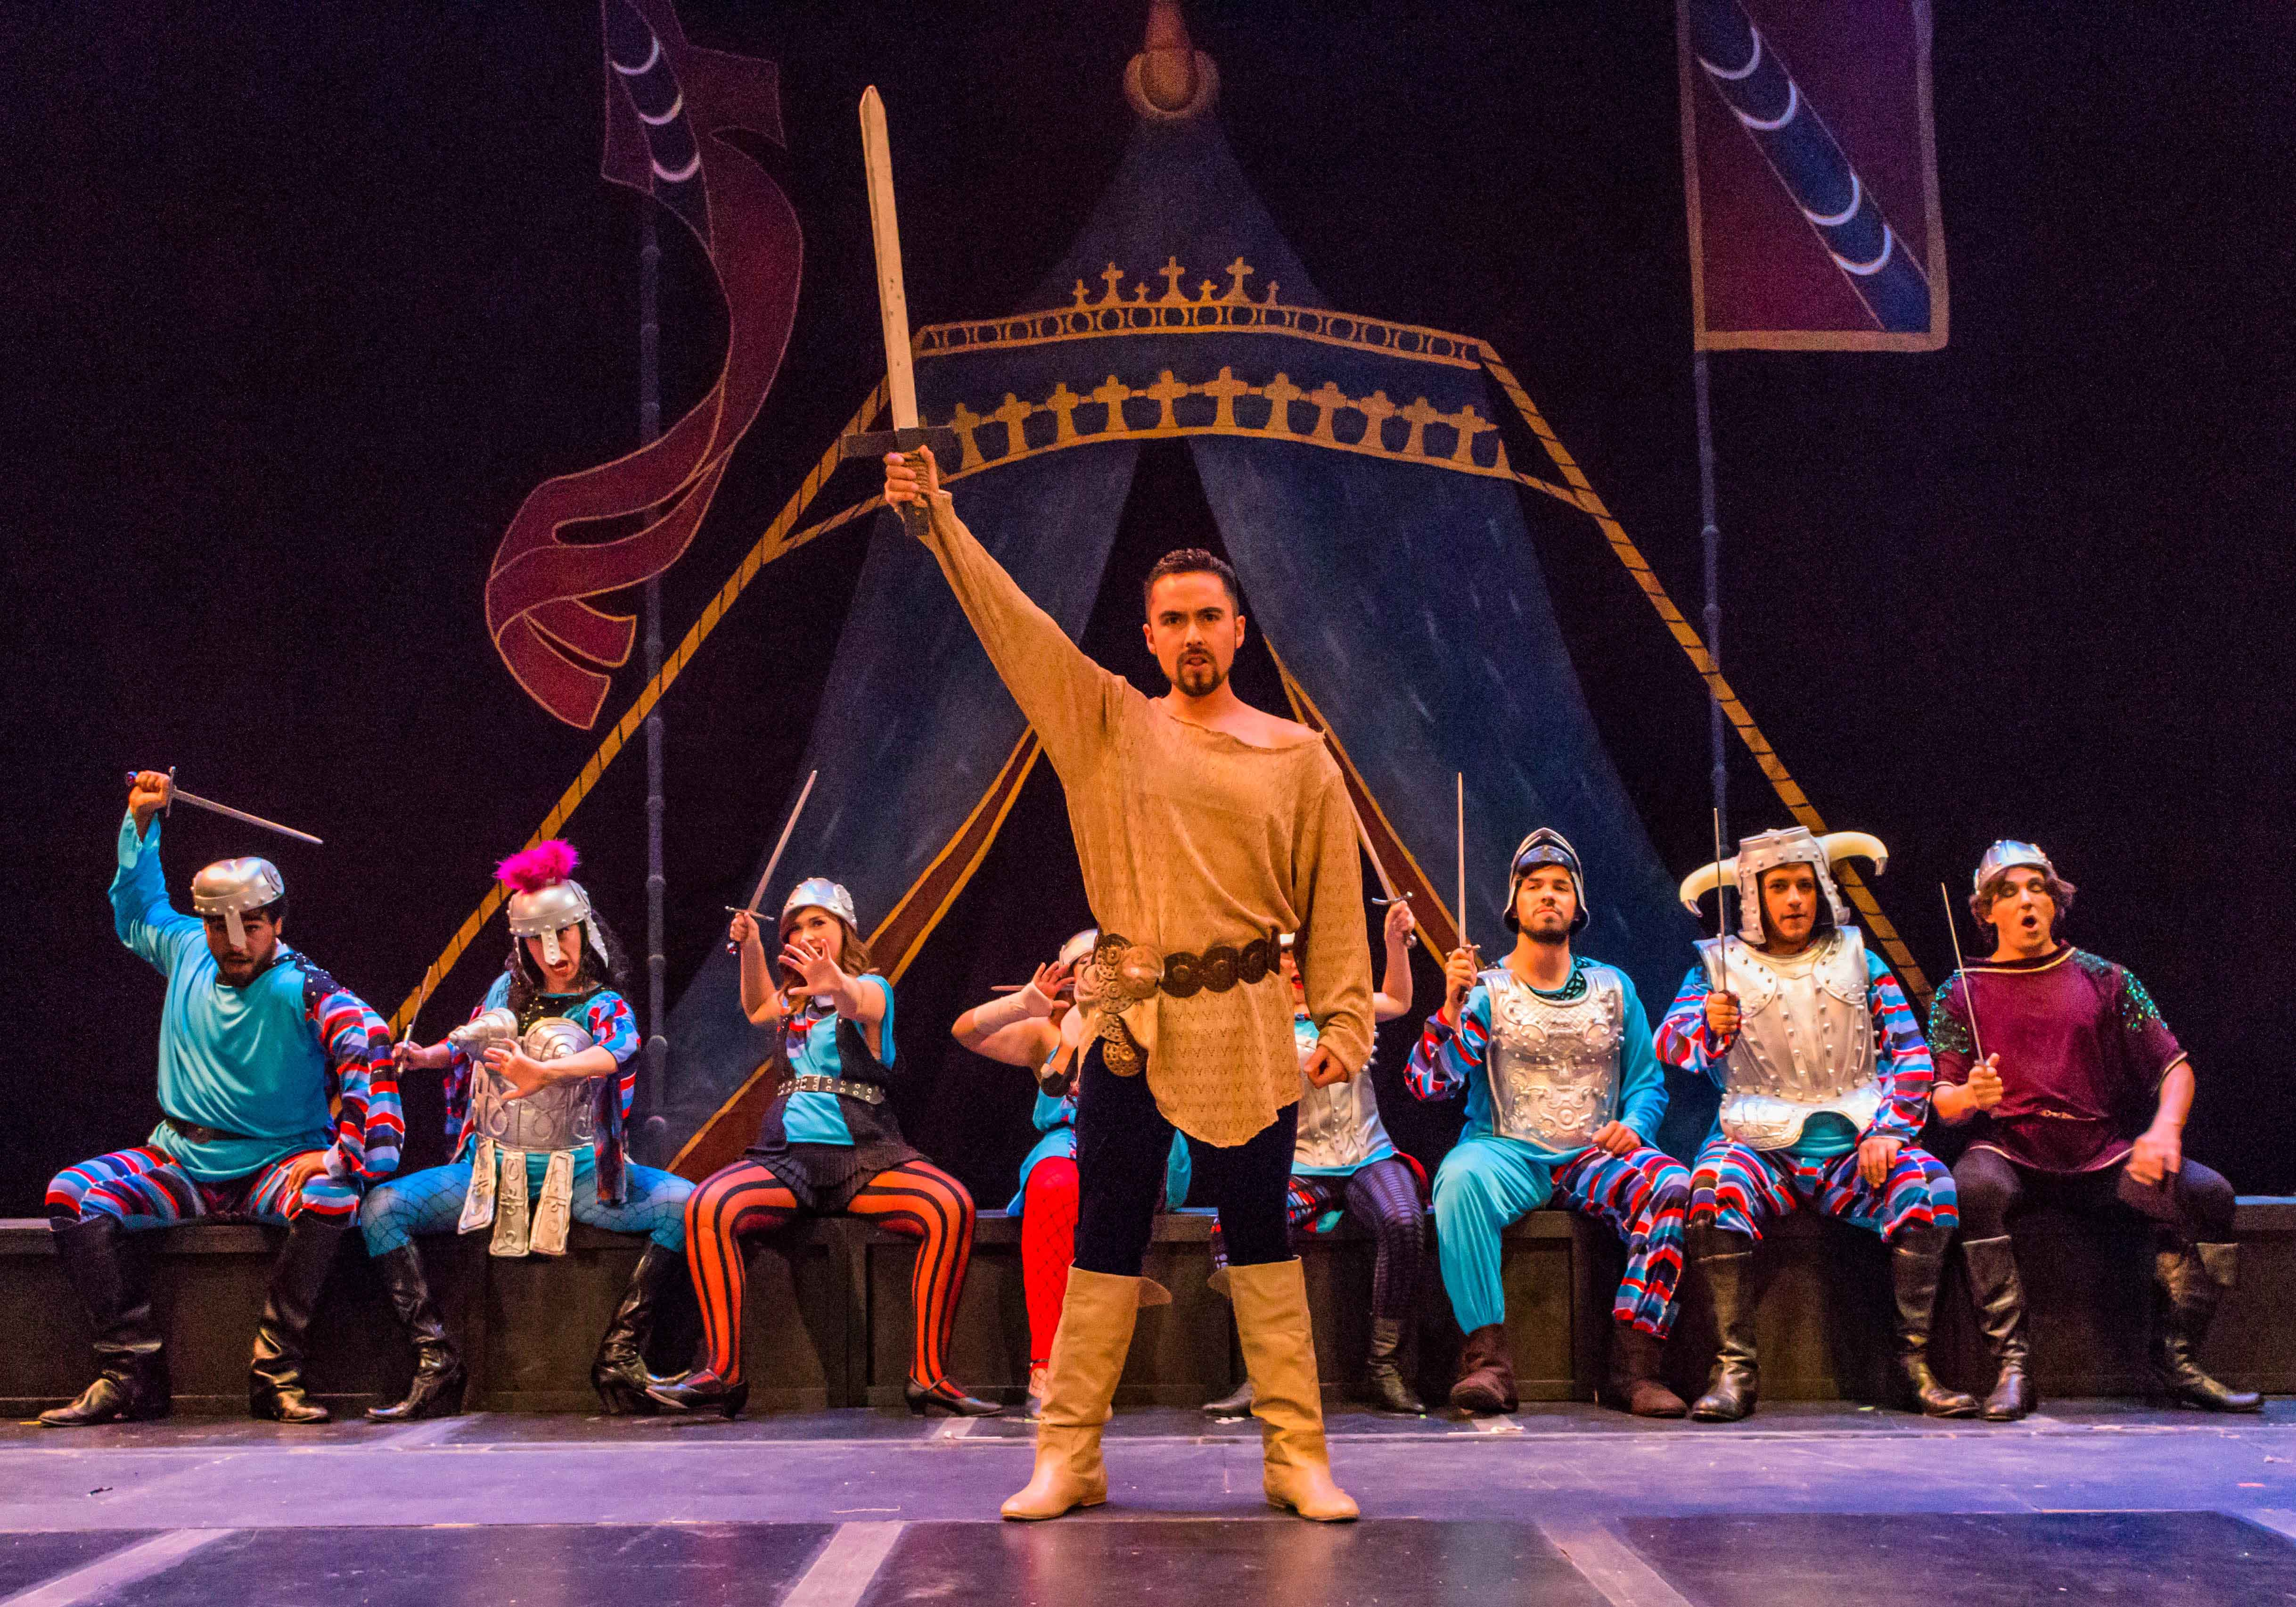 'Pippin' will be performed from July 10 through July 16.